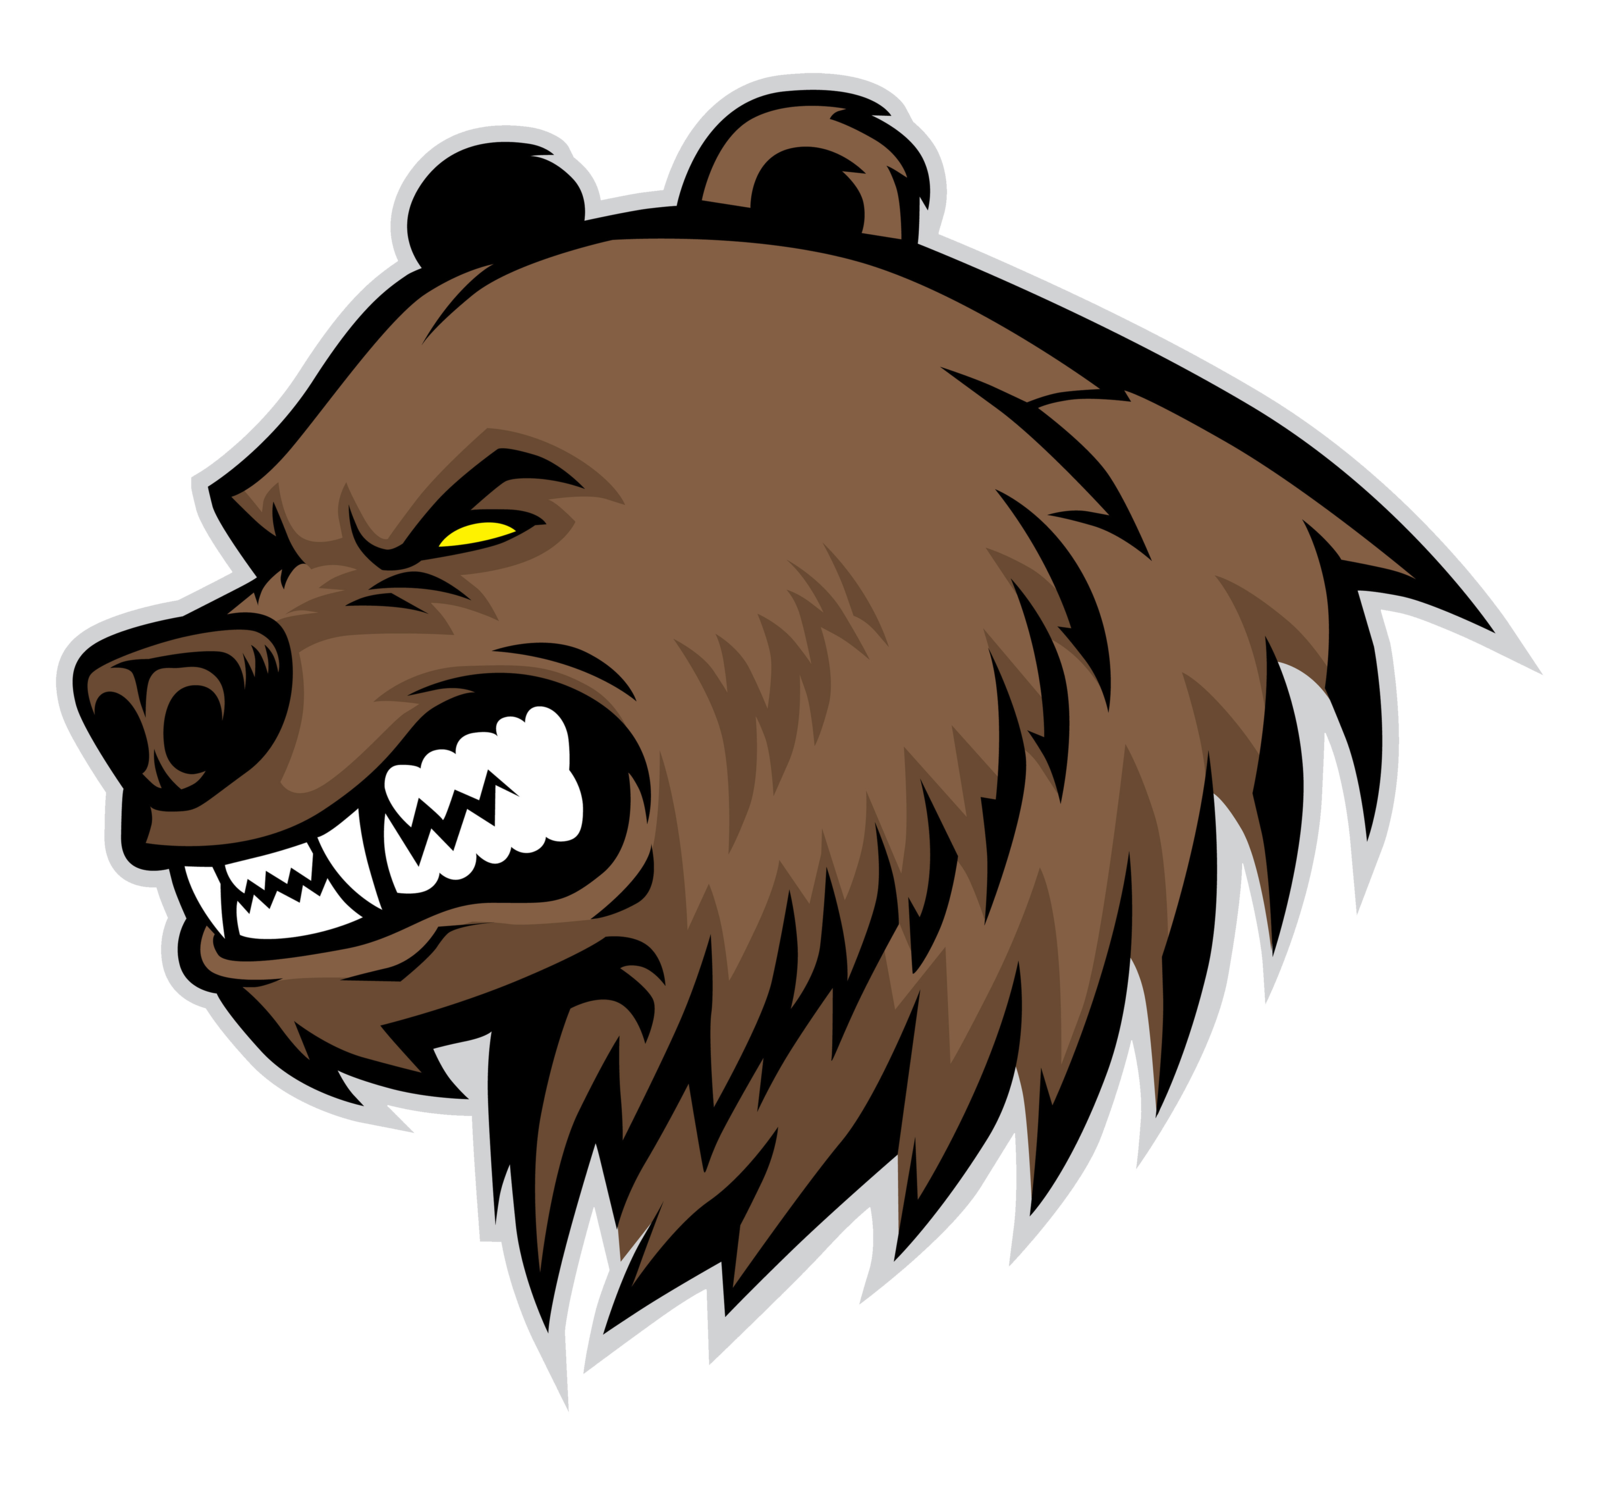 Fang drawing roar. Grizzly bear transprent png